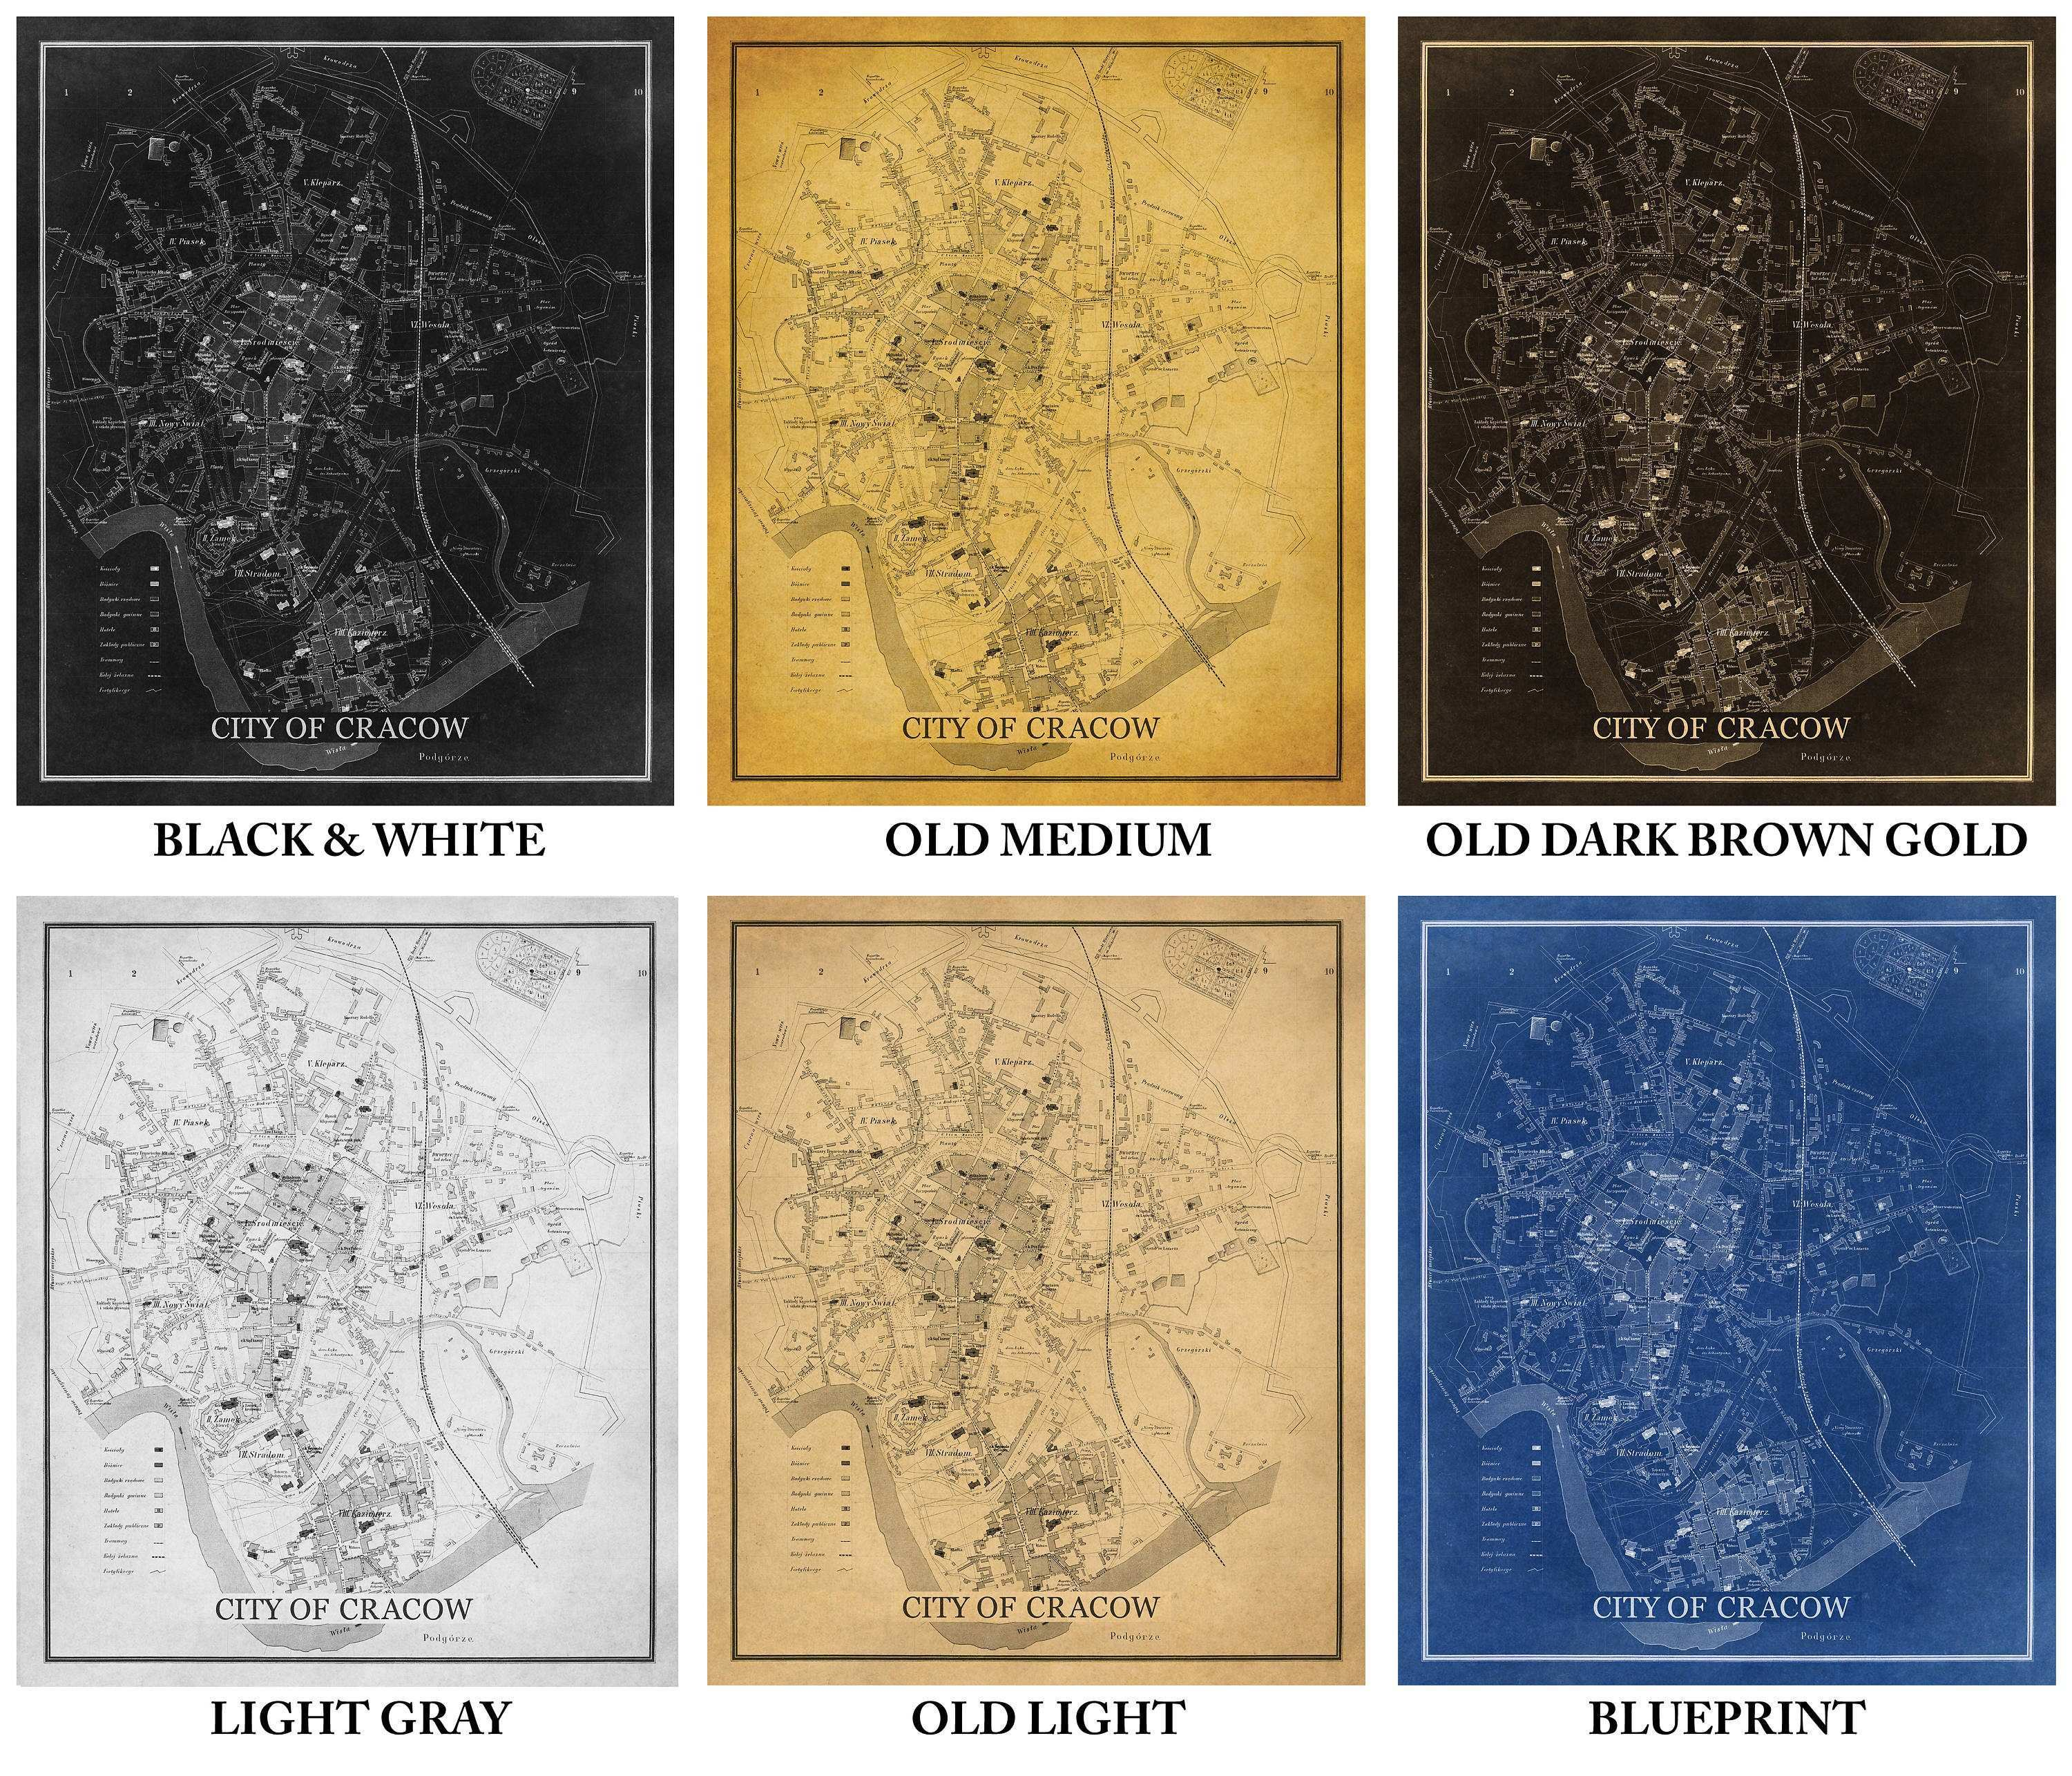 Old Map Cracow on Paper or Canvas print or gallery wrap 6